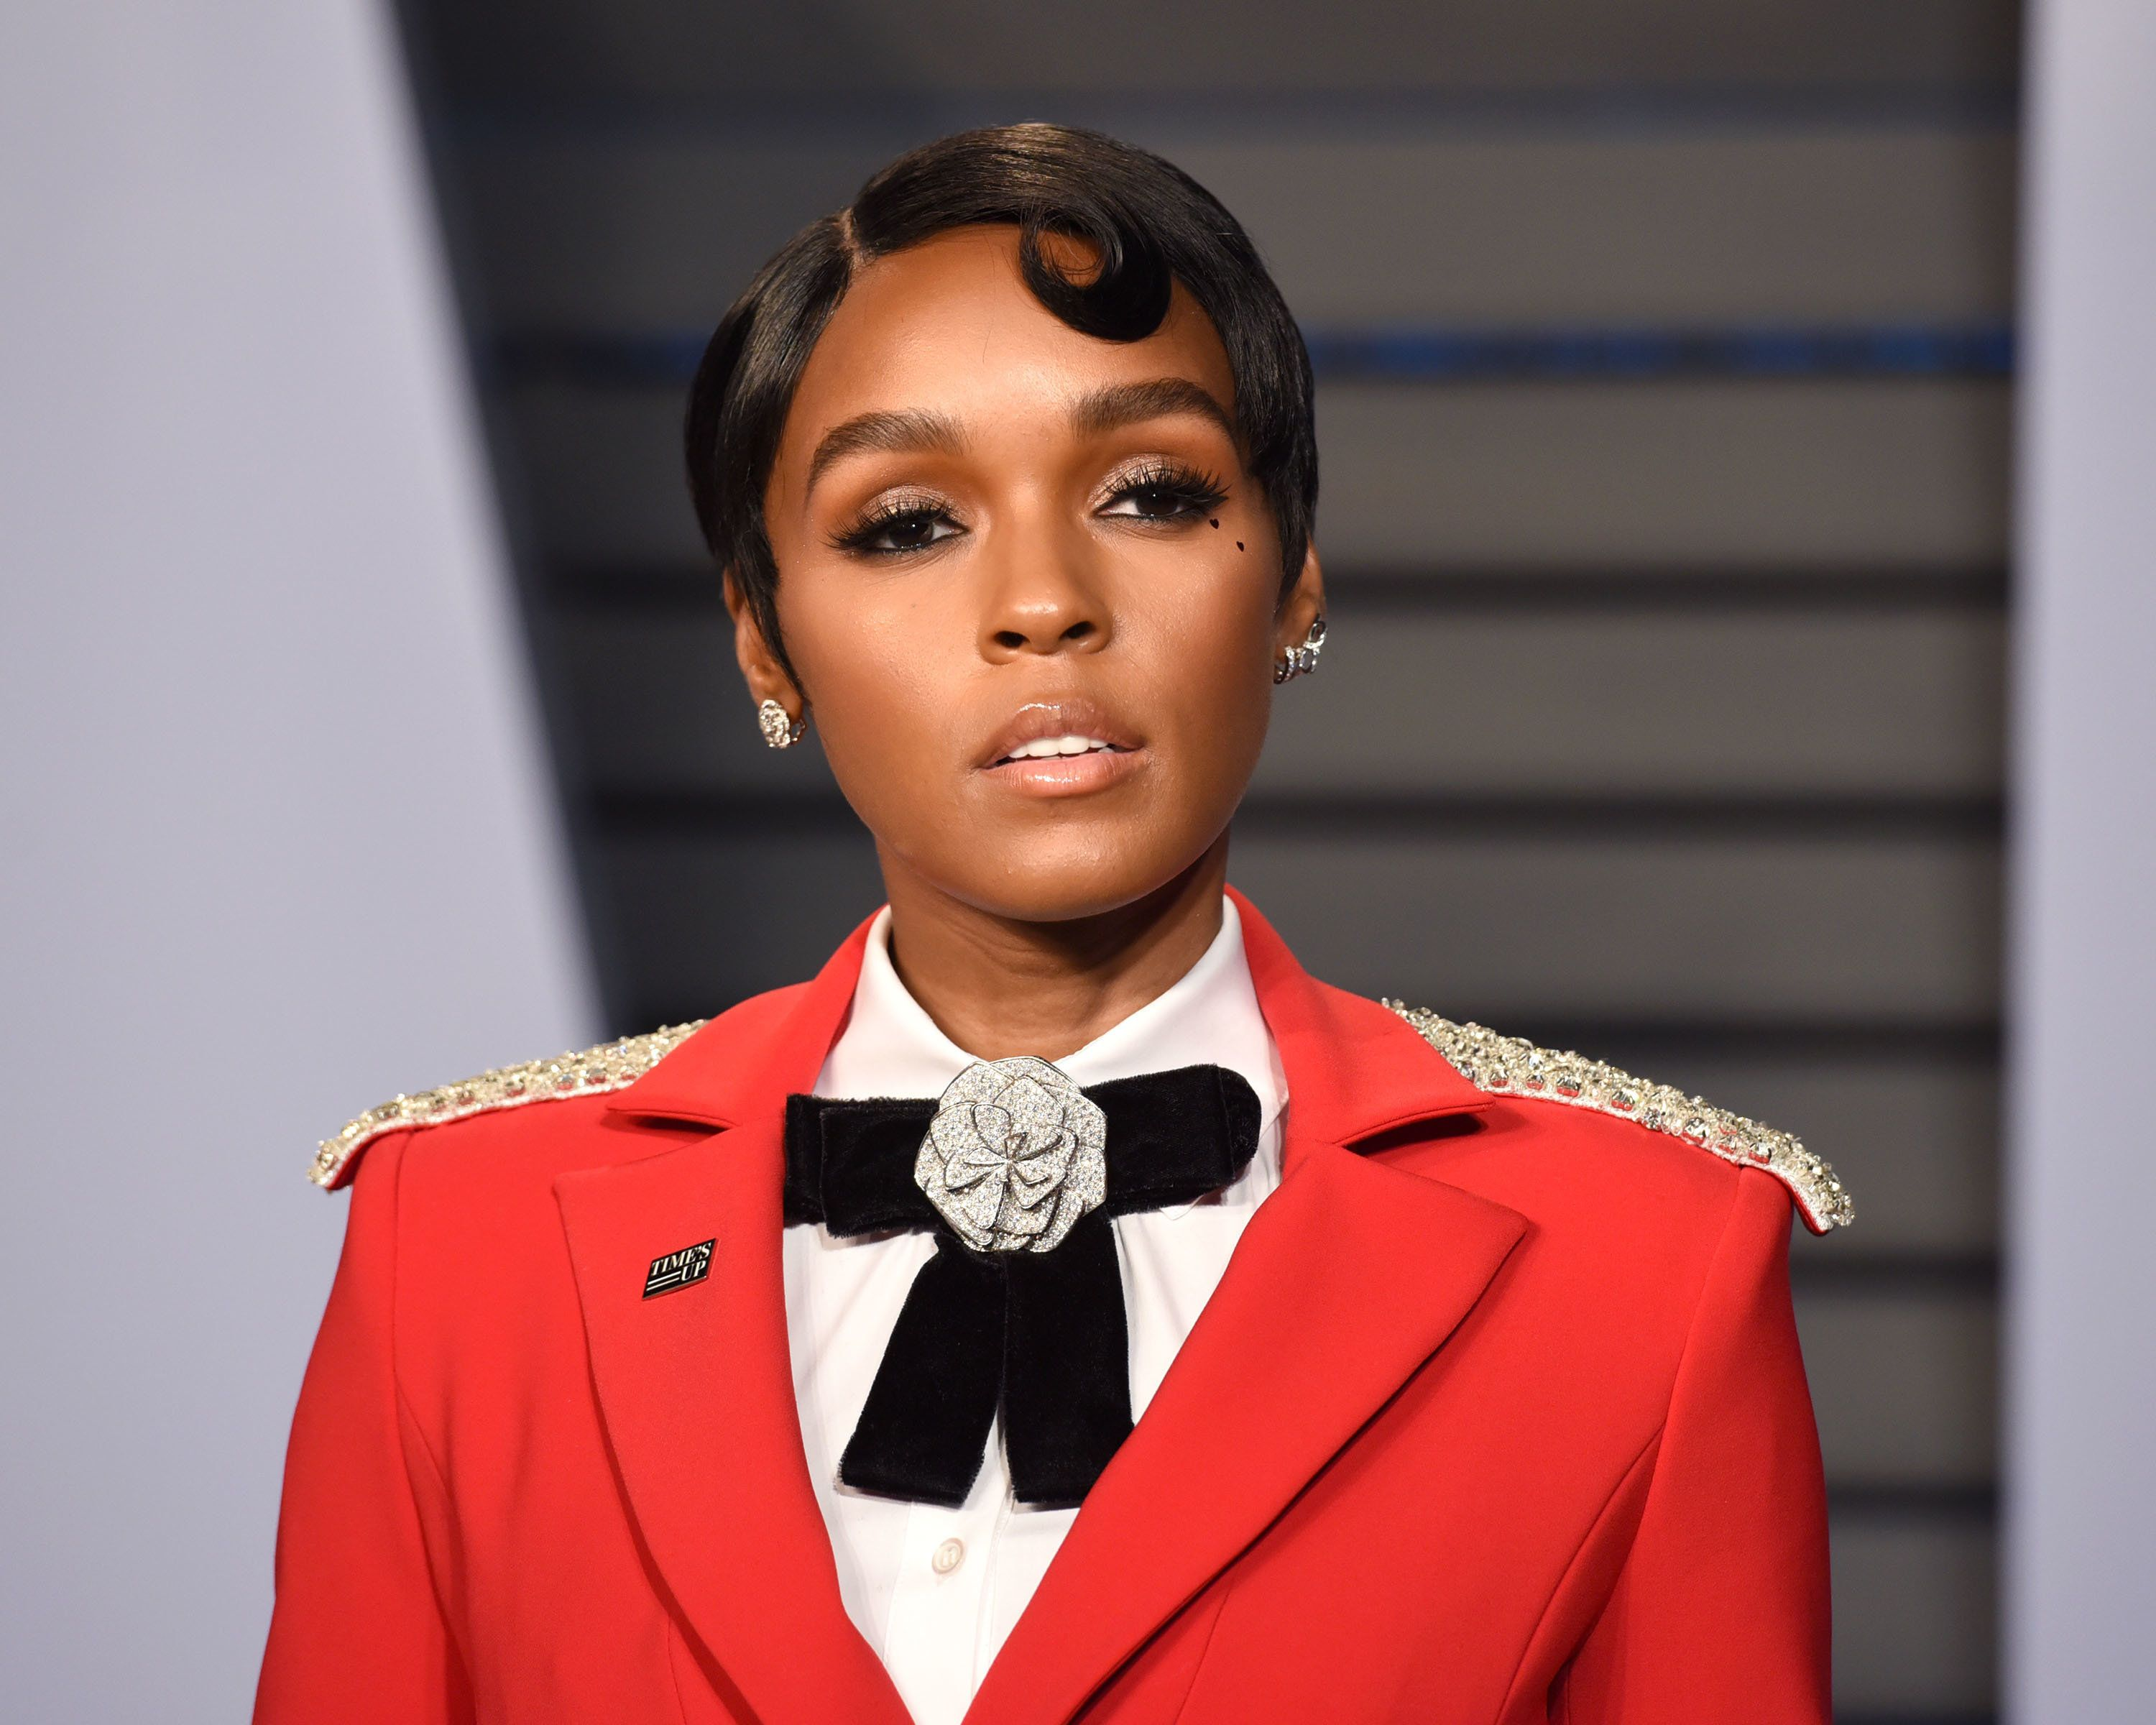 Janelle Monáe Reveals She Is Pansexual In Rolling Stone